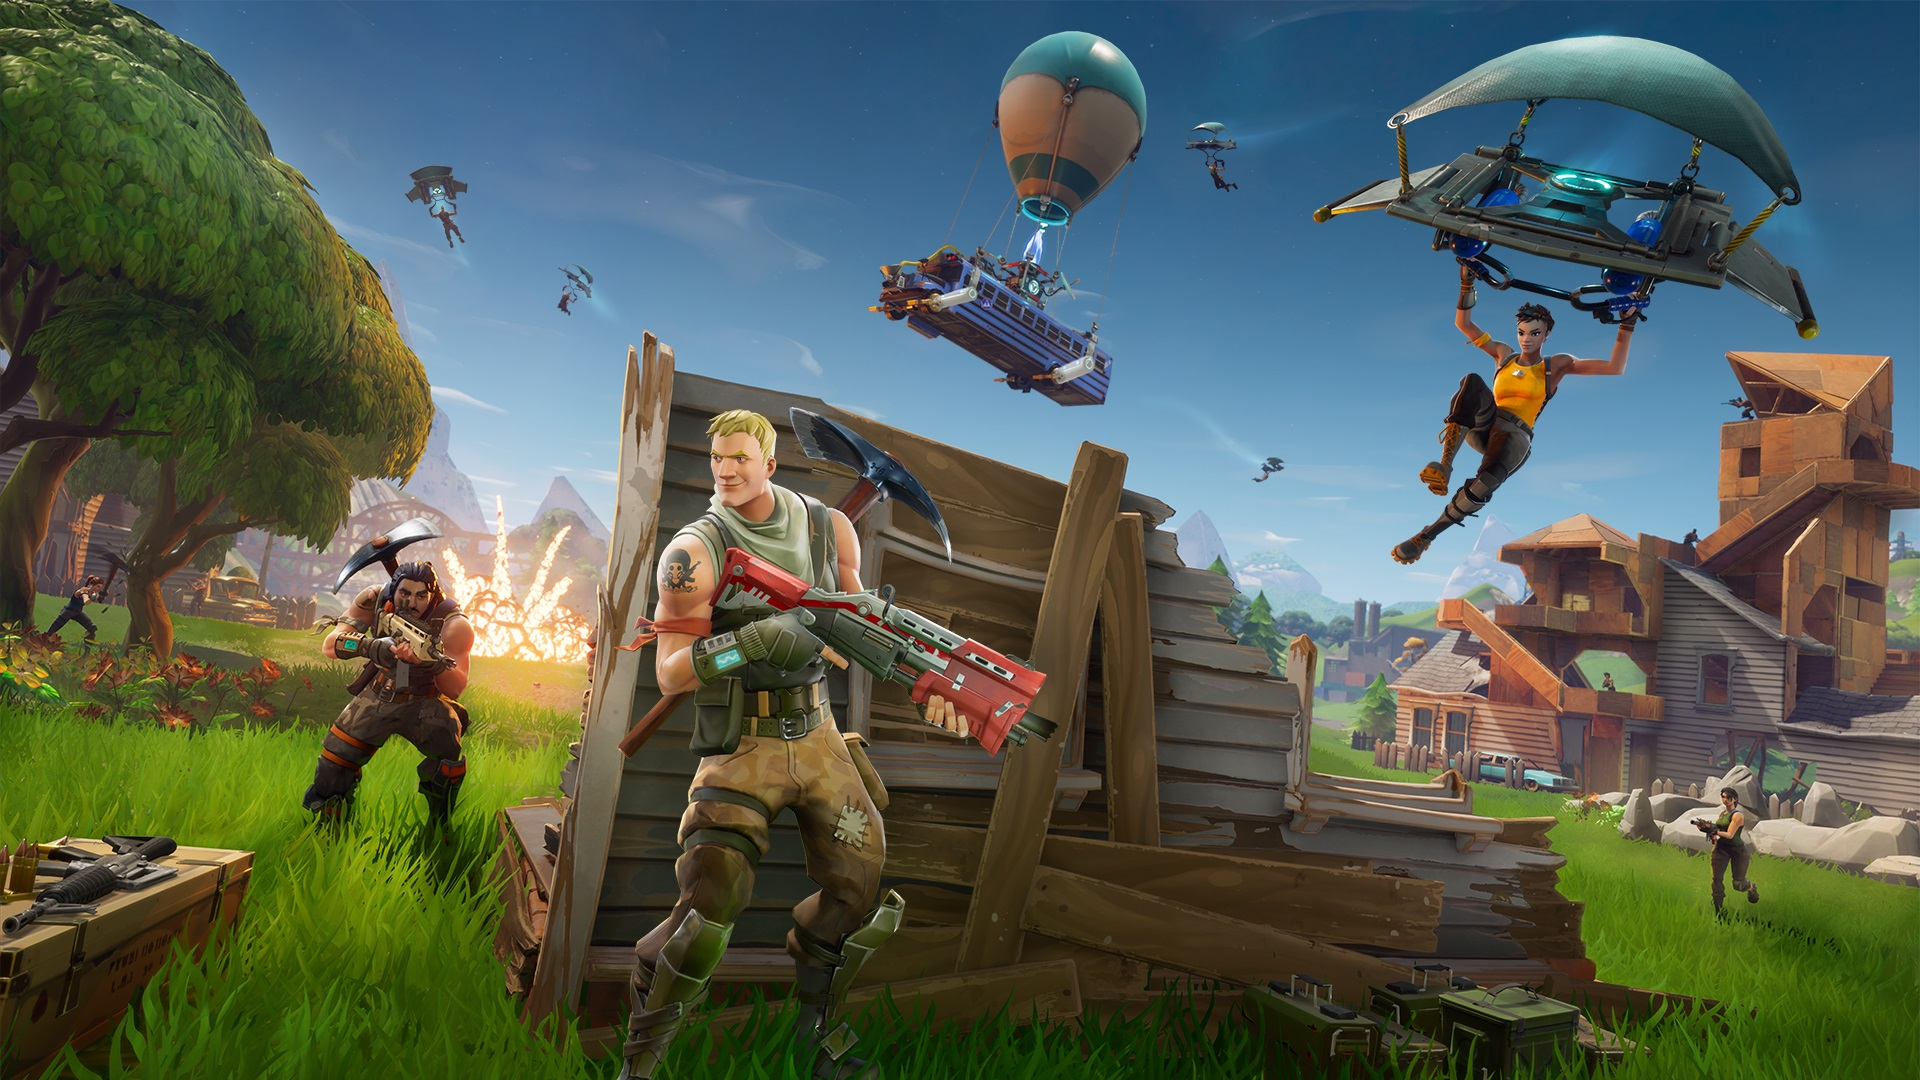 Battle Royale Games What Are The Best Games Like Fortnite PCGamesN - Minecraft survival spiele